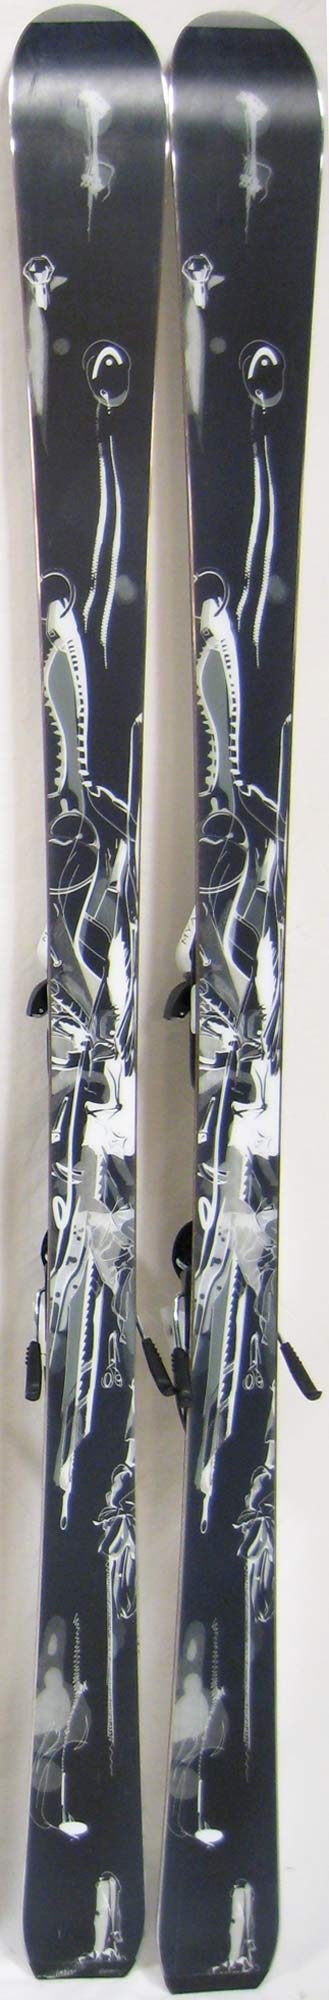 Bases of 2012 Head Mya No. 5 PR Skis For Sale